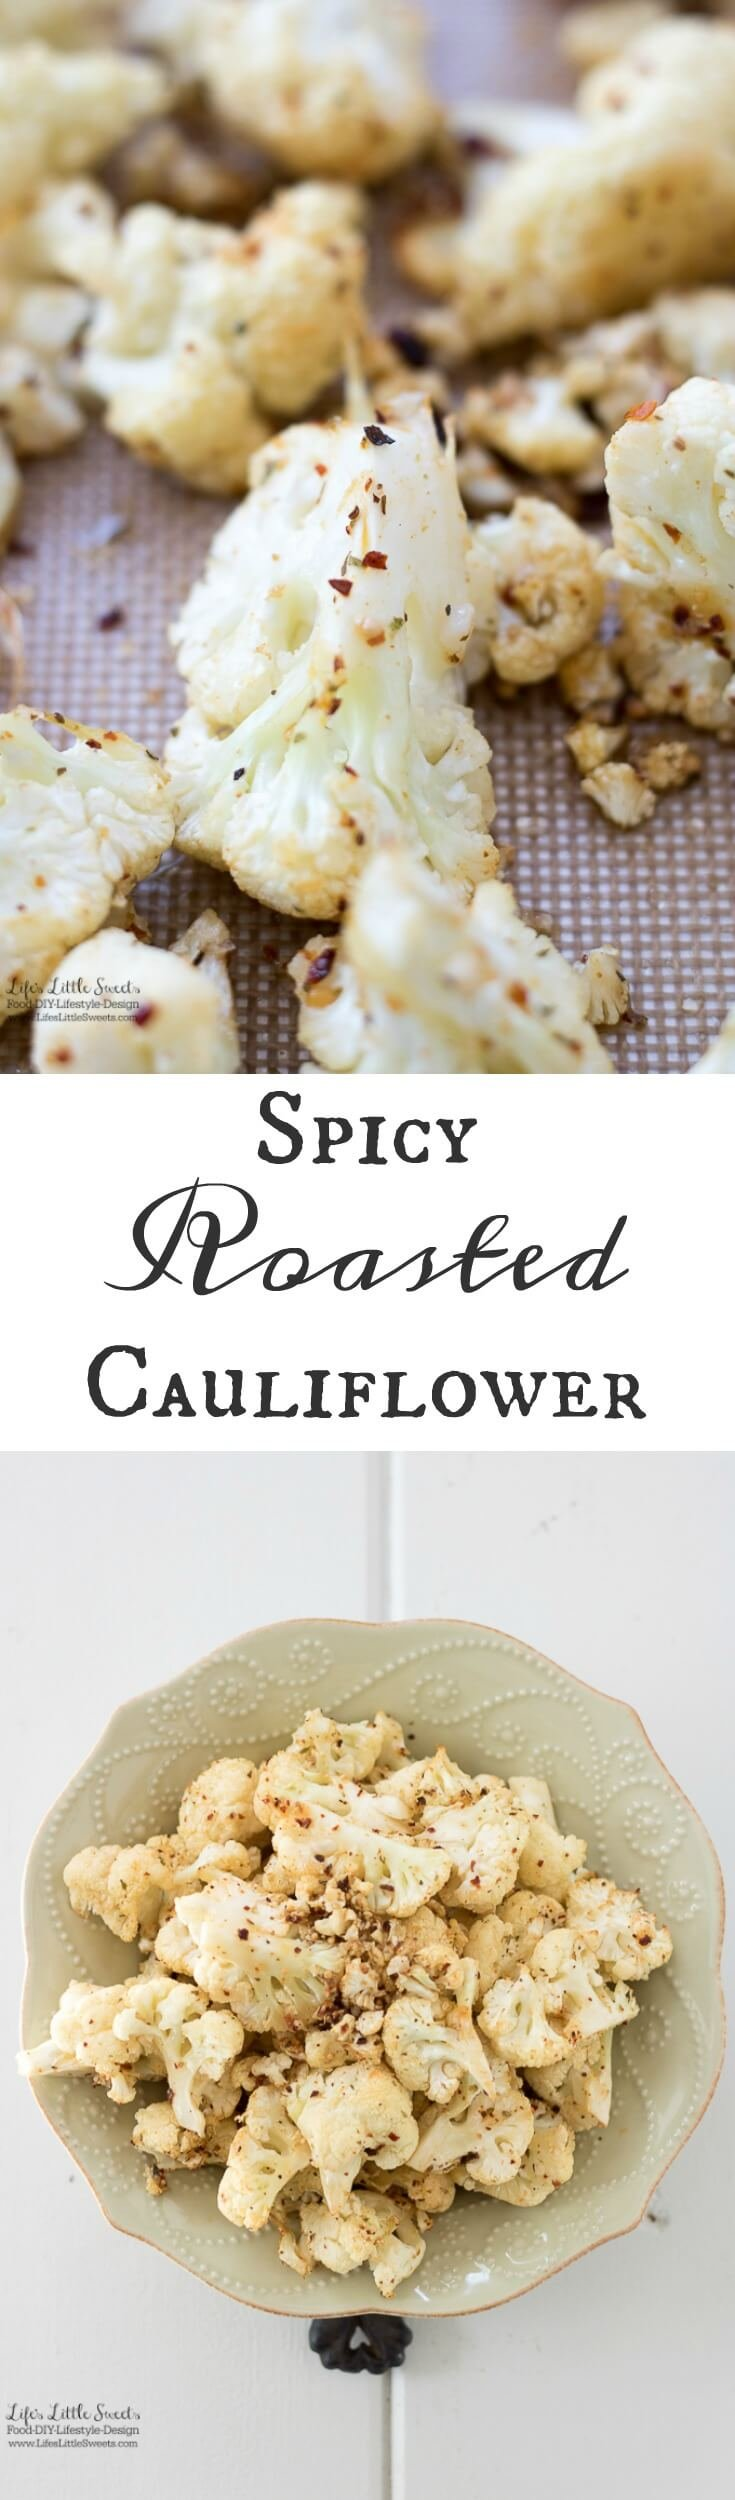 This Spicy Roasted Cauliflower is the perfect side to go with any dinner. It is savory and flavorful and only takes 30 minutes to make!